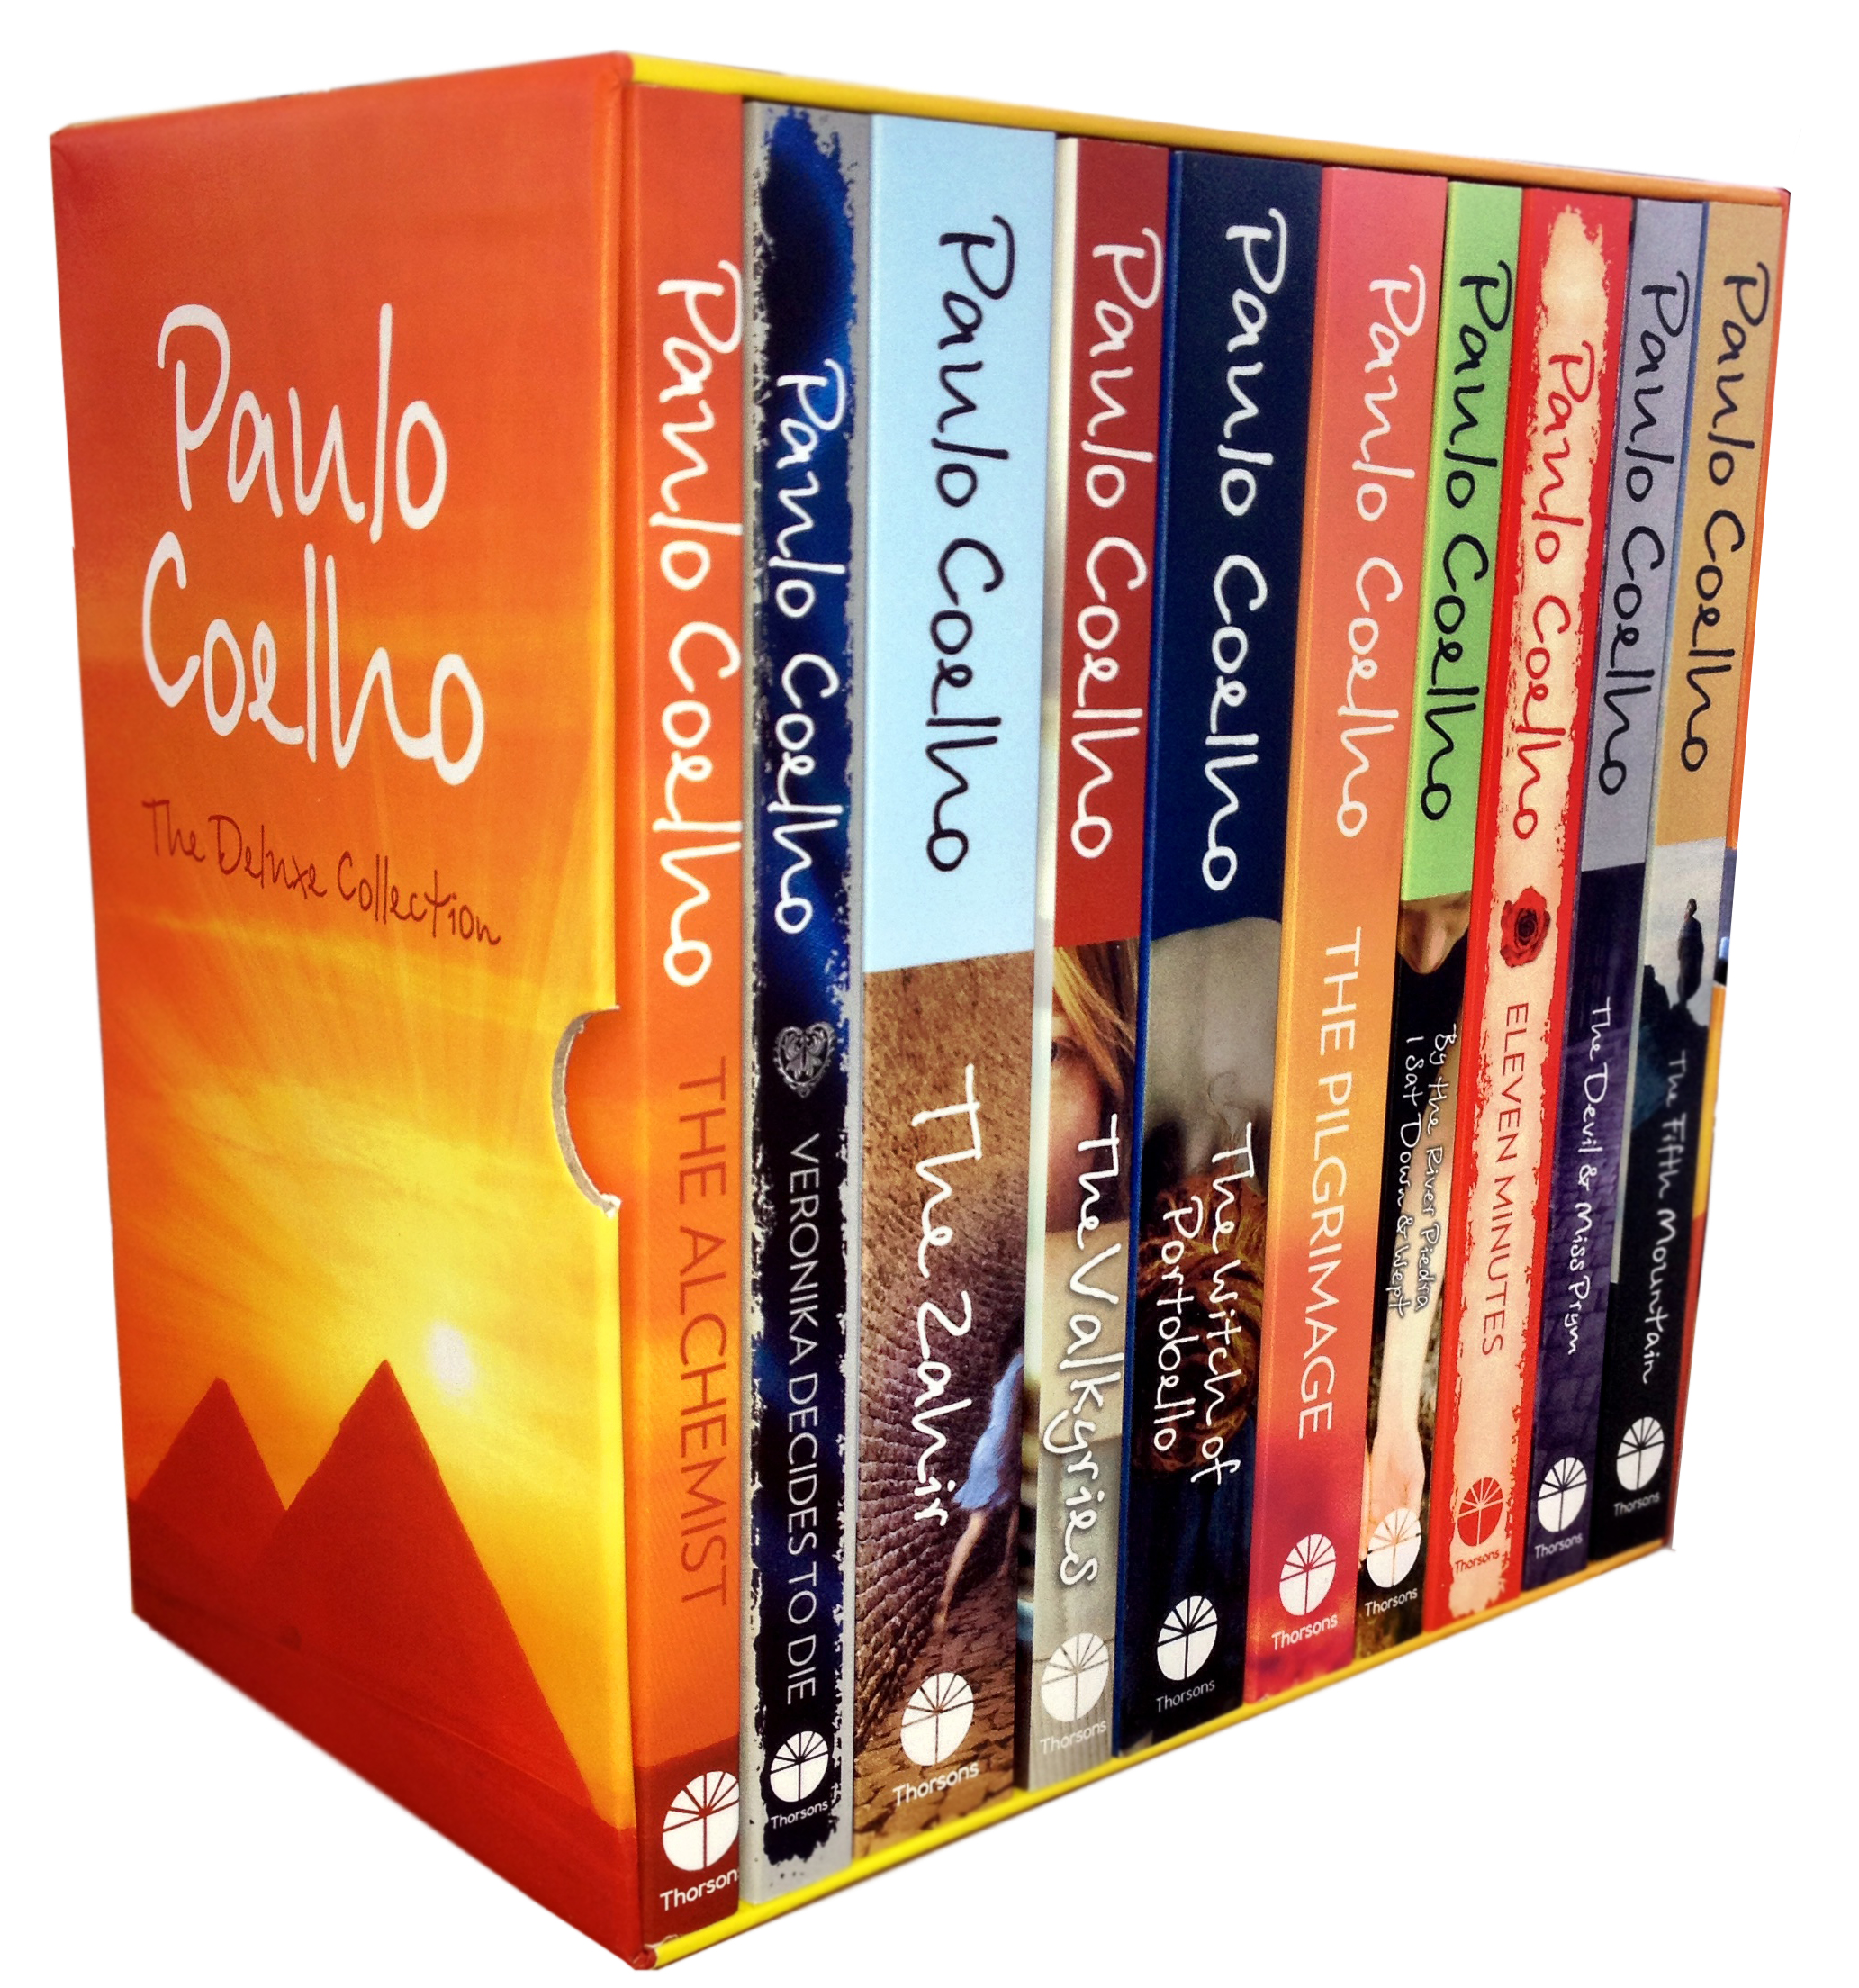 paulo coelho the deluxe collection books box set pack alchemist paulo coelho the deluxe collection 10 books set